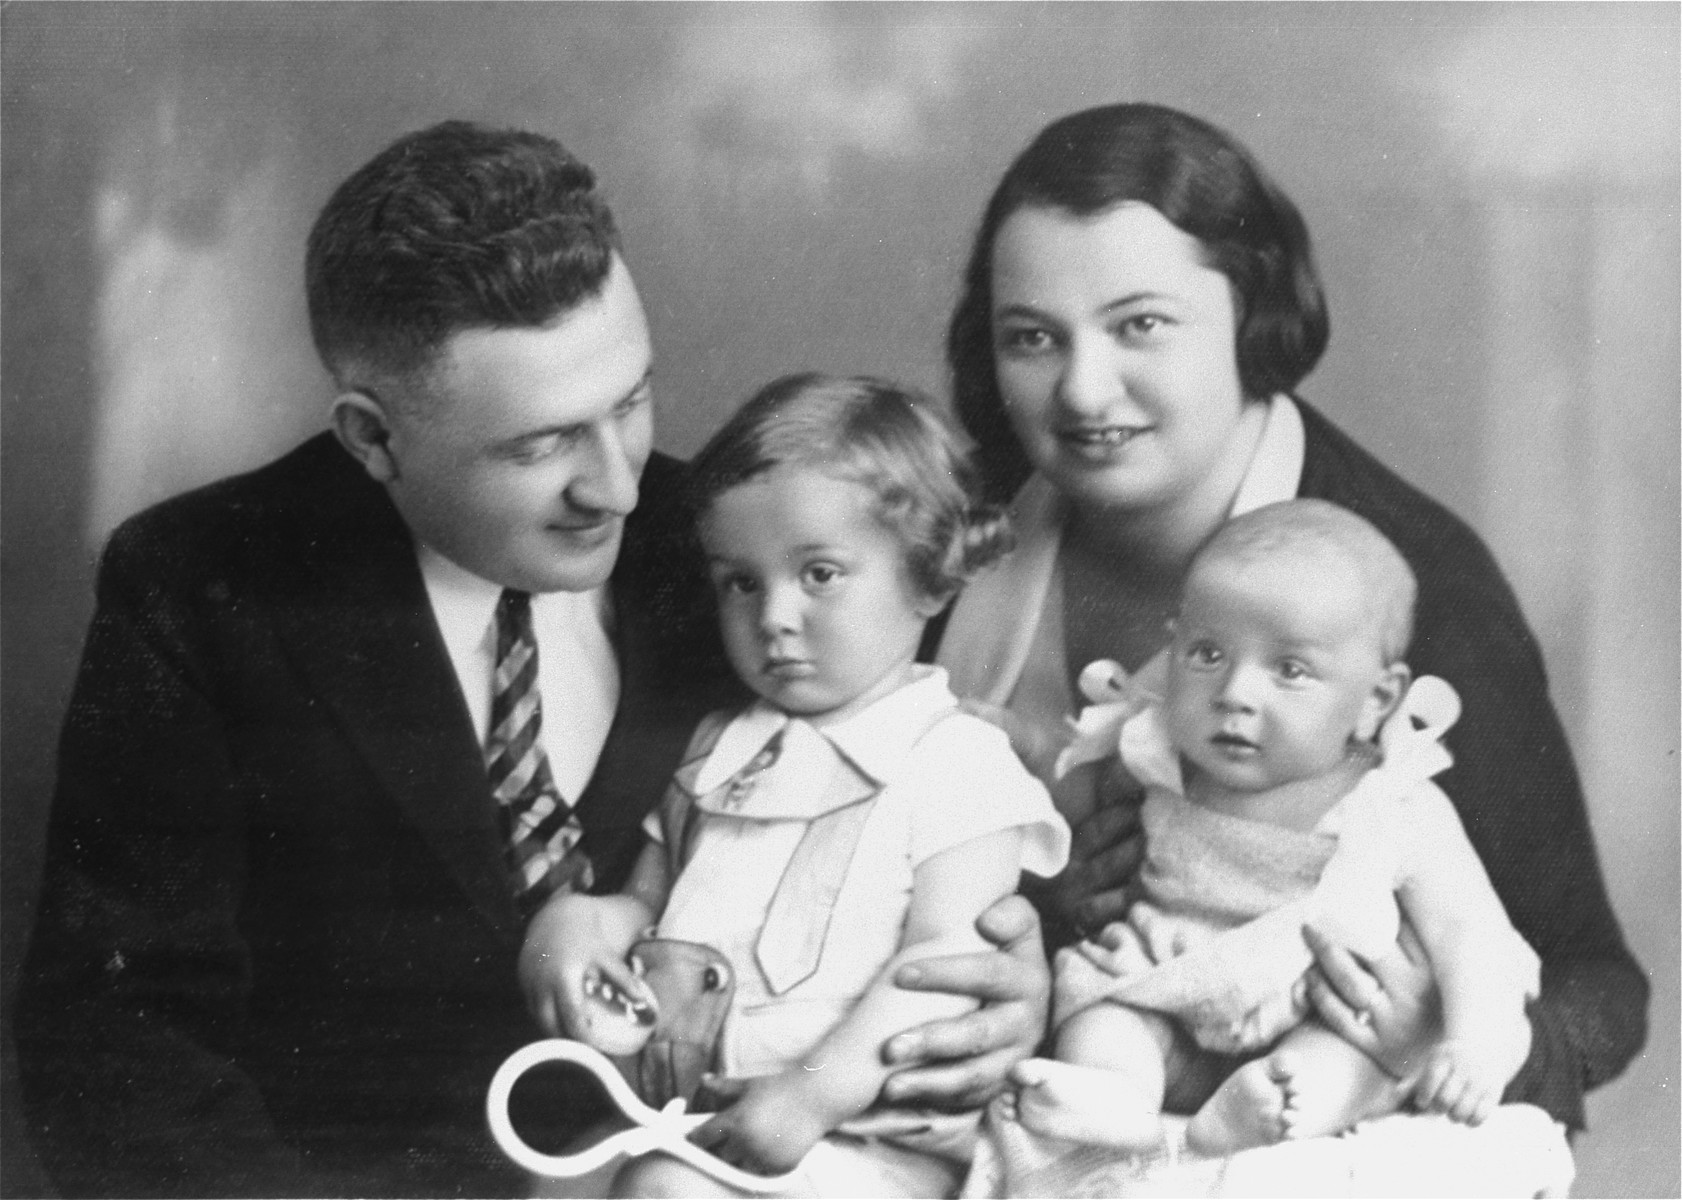 Portrait of the Muller family in Hlohovec, Czechoslovakia.  Pictured are Nandor and Magda Herzog Muller with their two children, Heinrich and Alice.